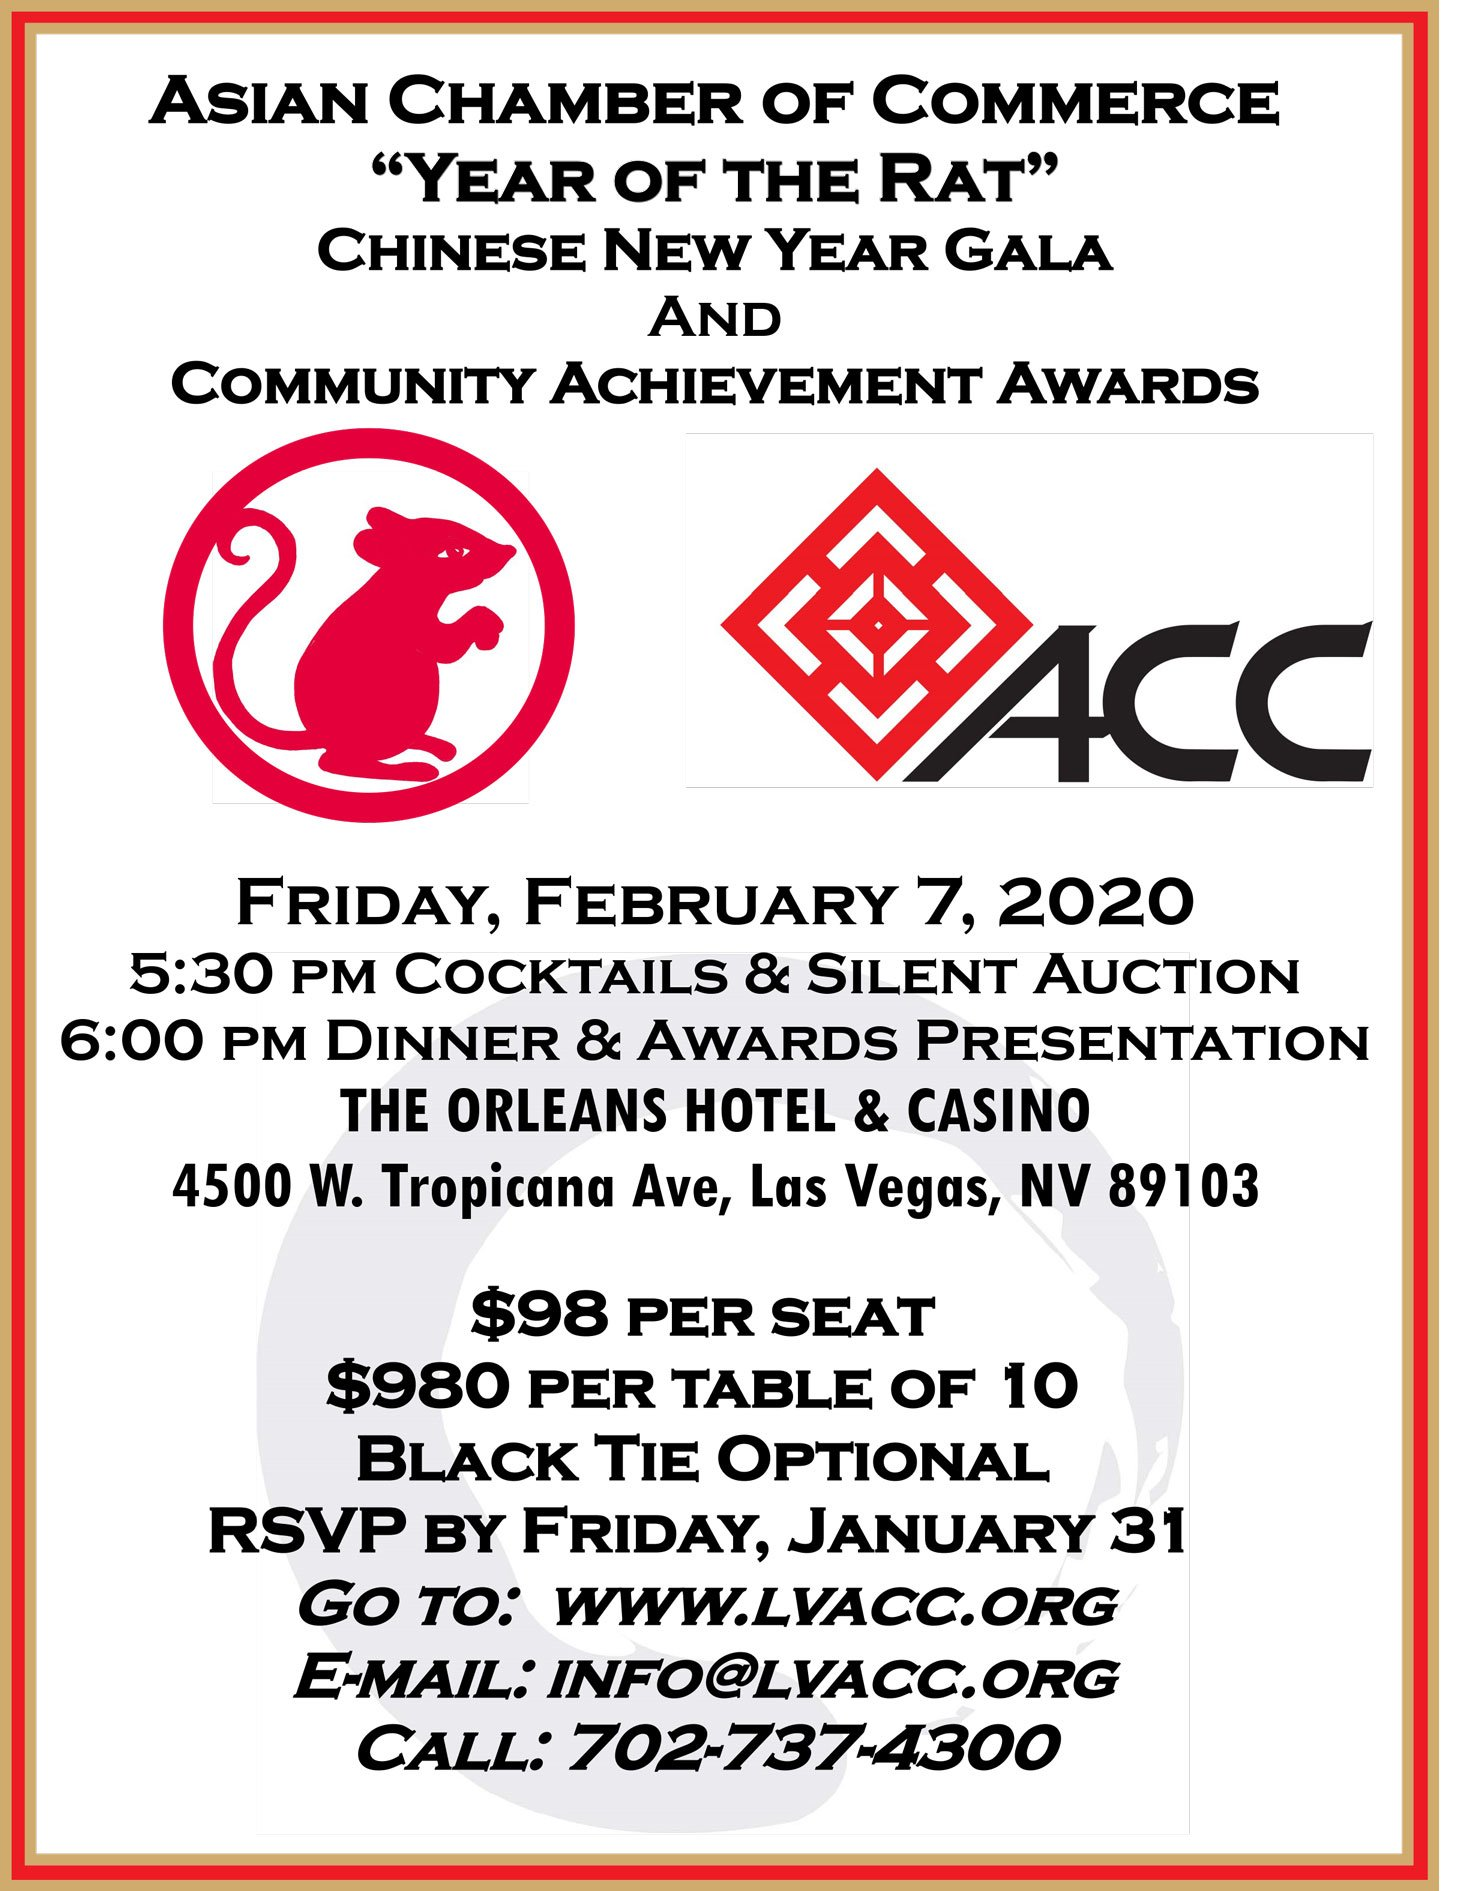 Chinese New Year Gala @ THE ORLEANS HOTEL & CASINO